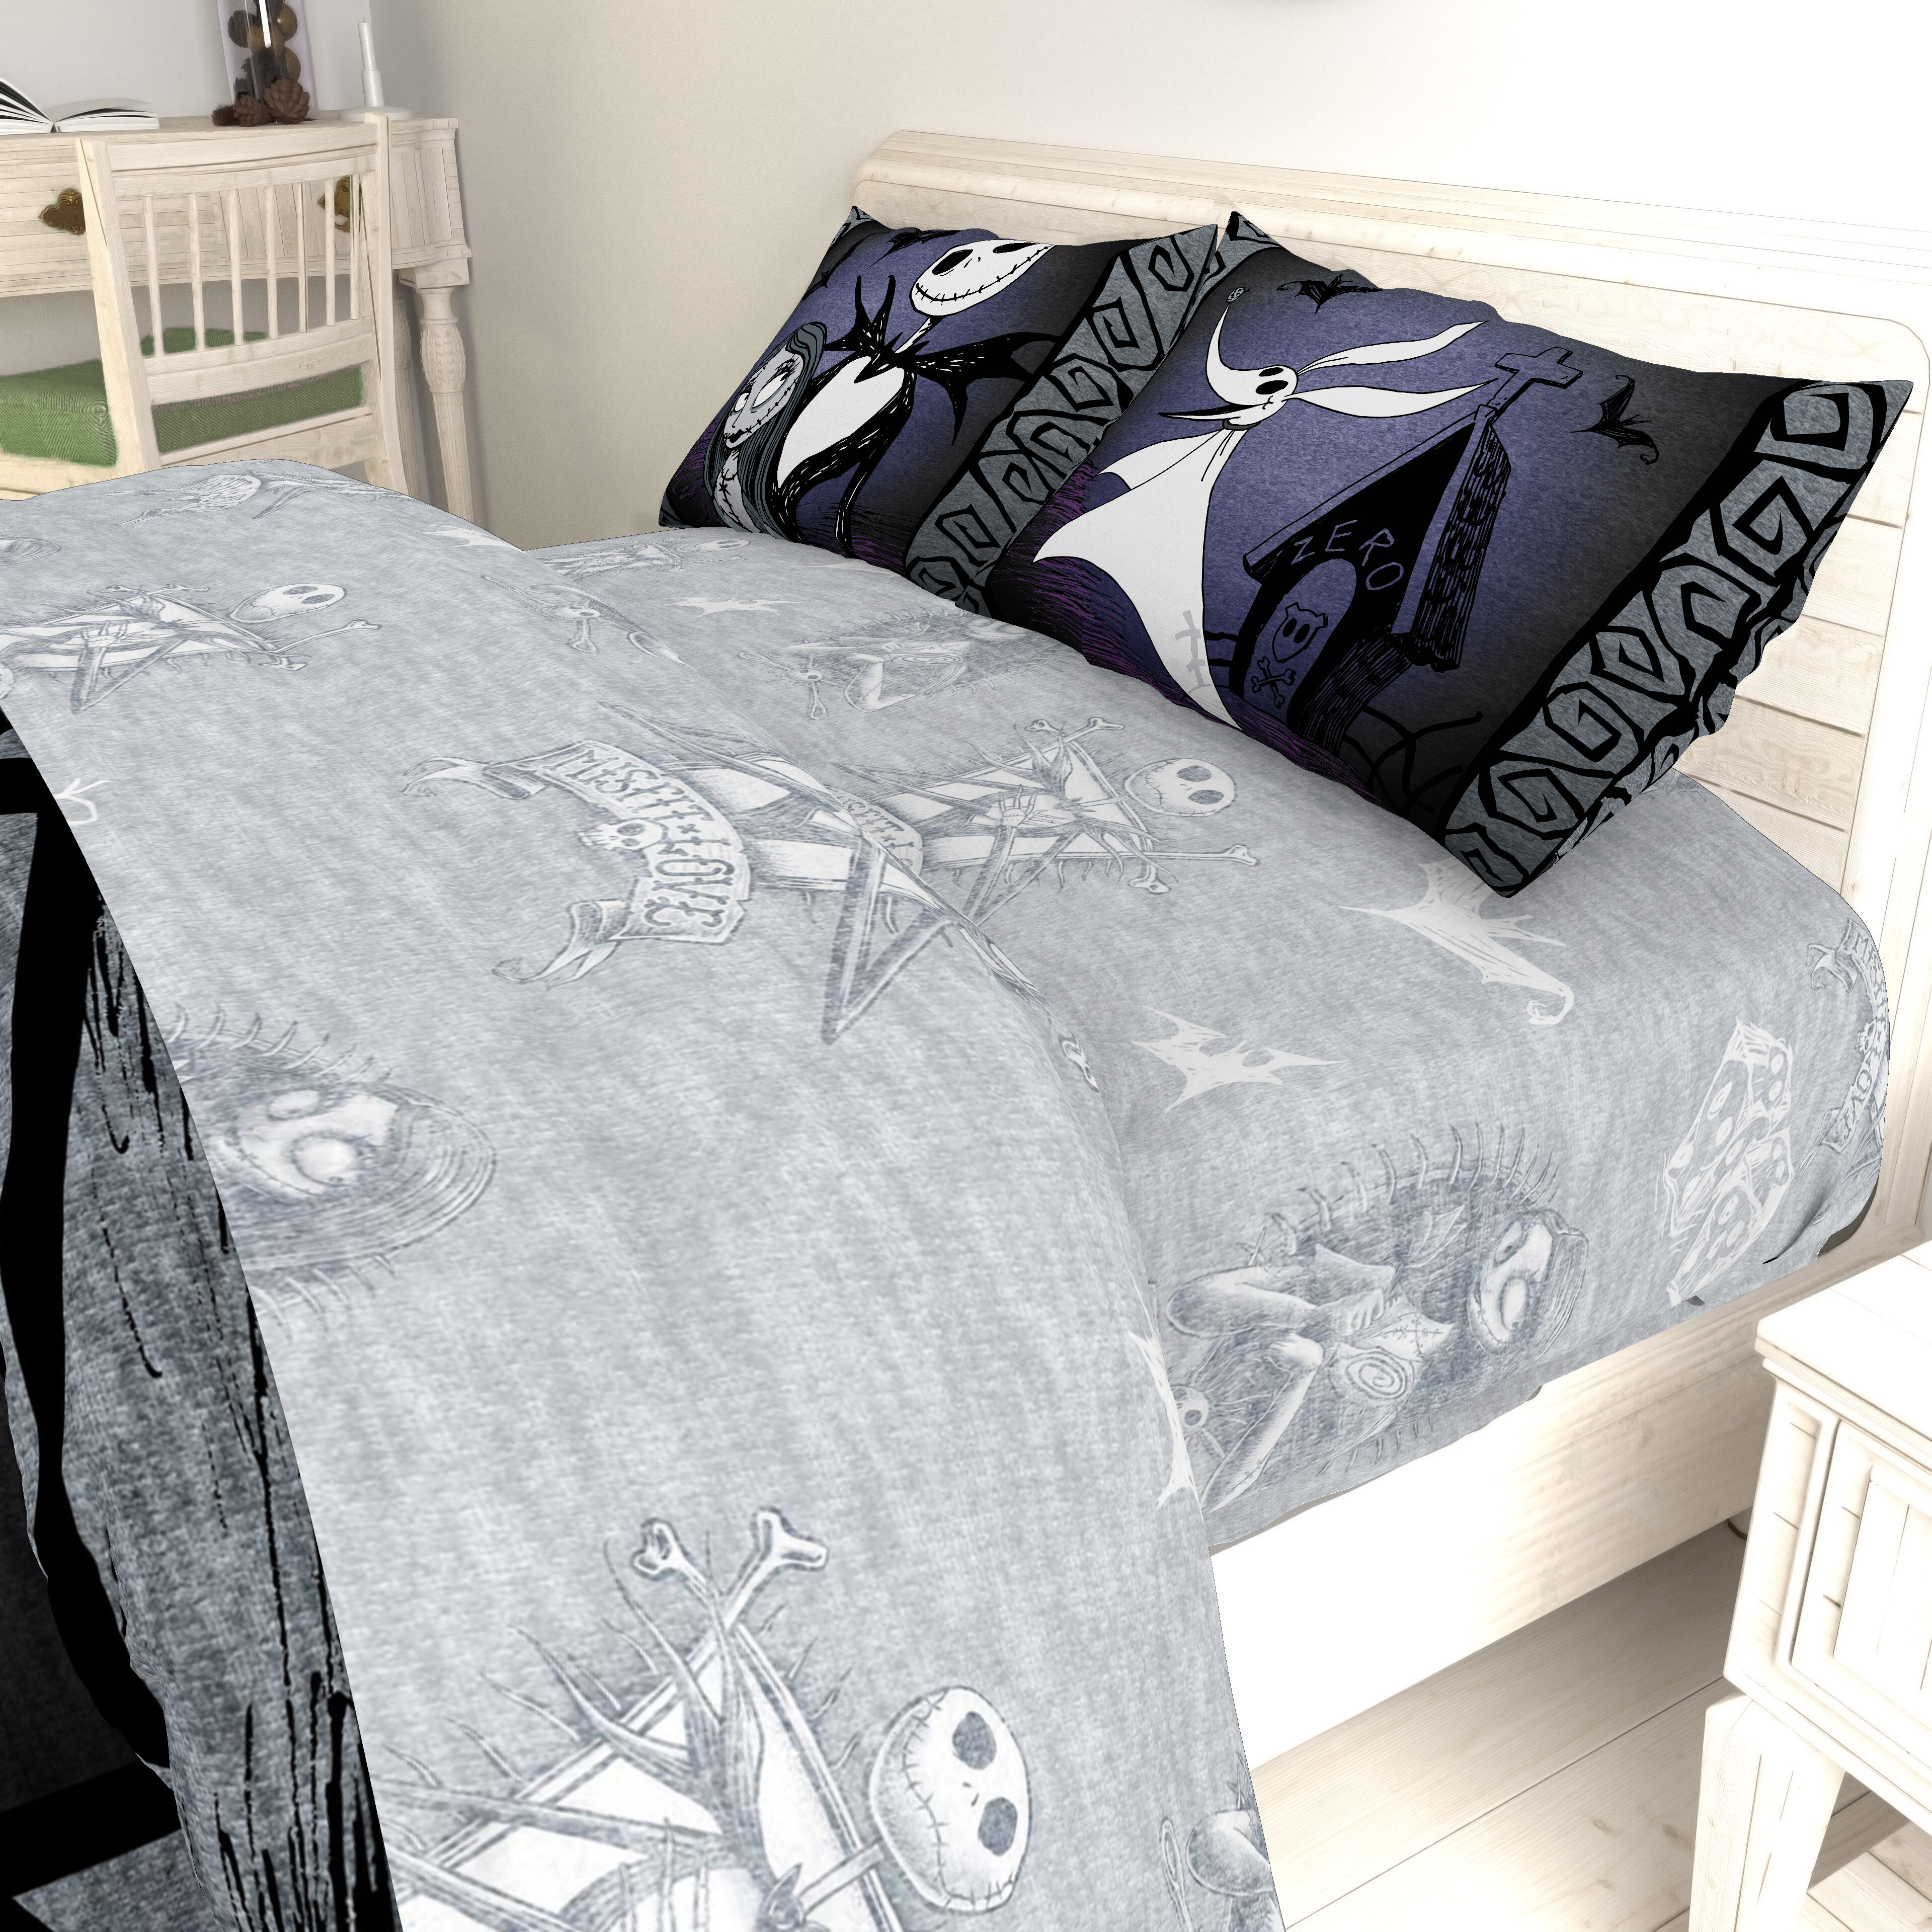 Disney Nightmare Before Christmas Meant To Be Sheet Set | Wayfair